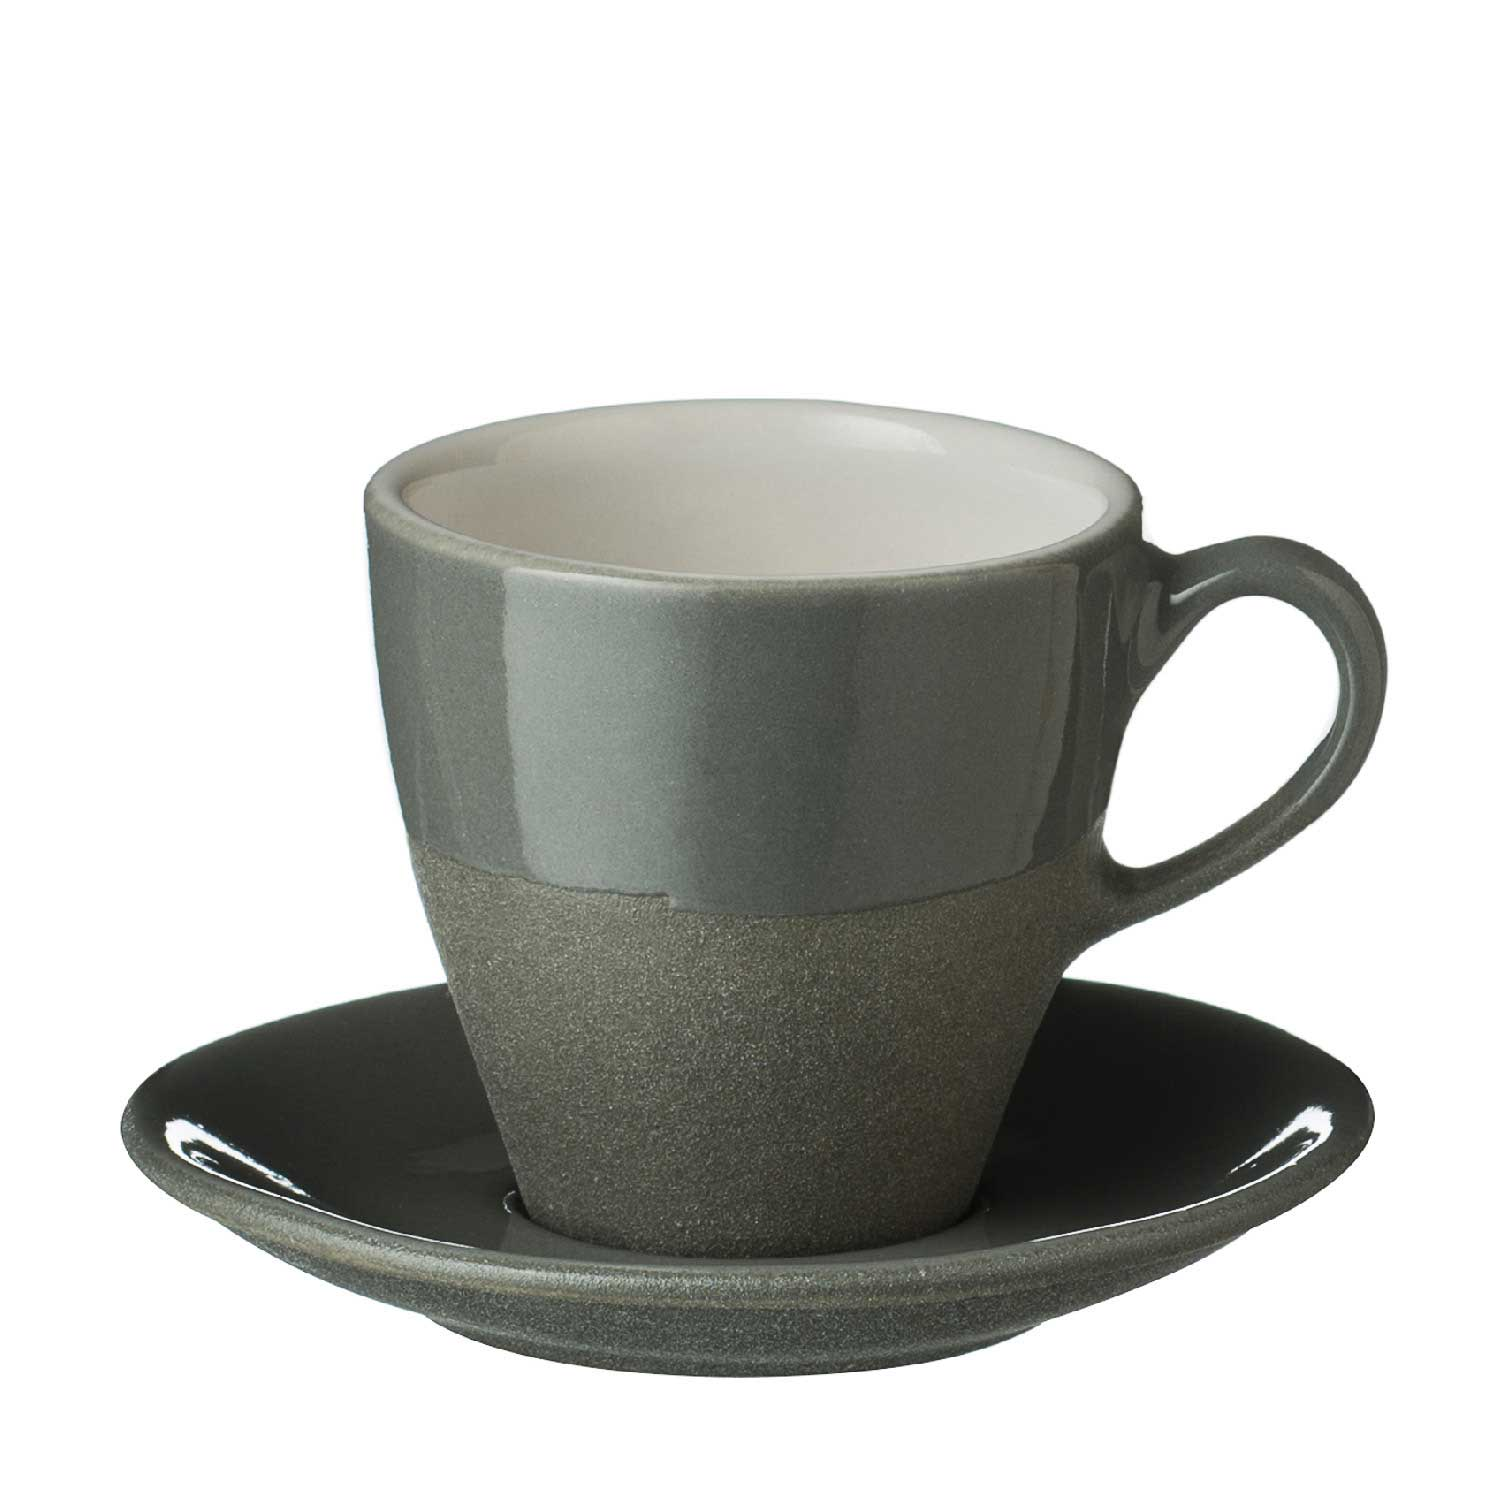 Narrow Espresso Cup & Saucer Set